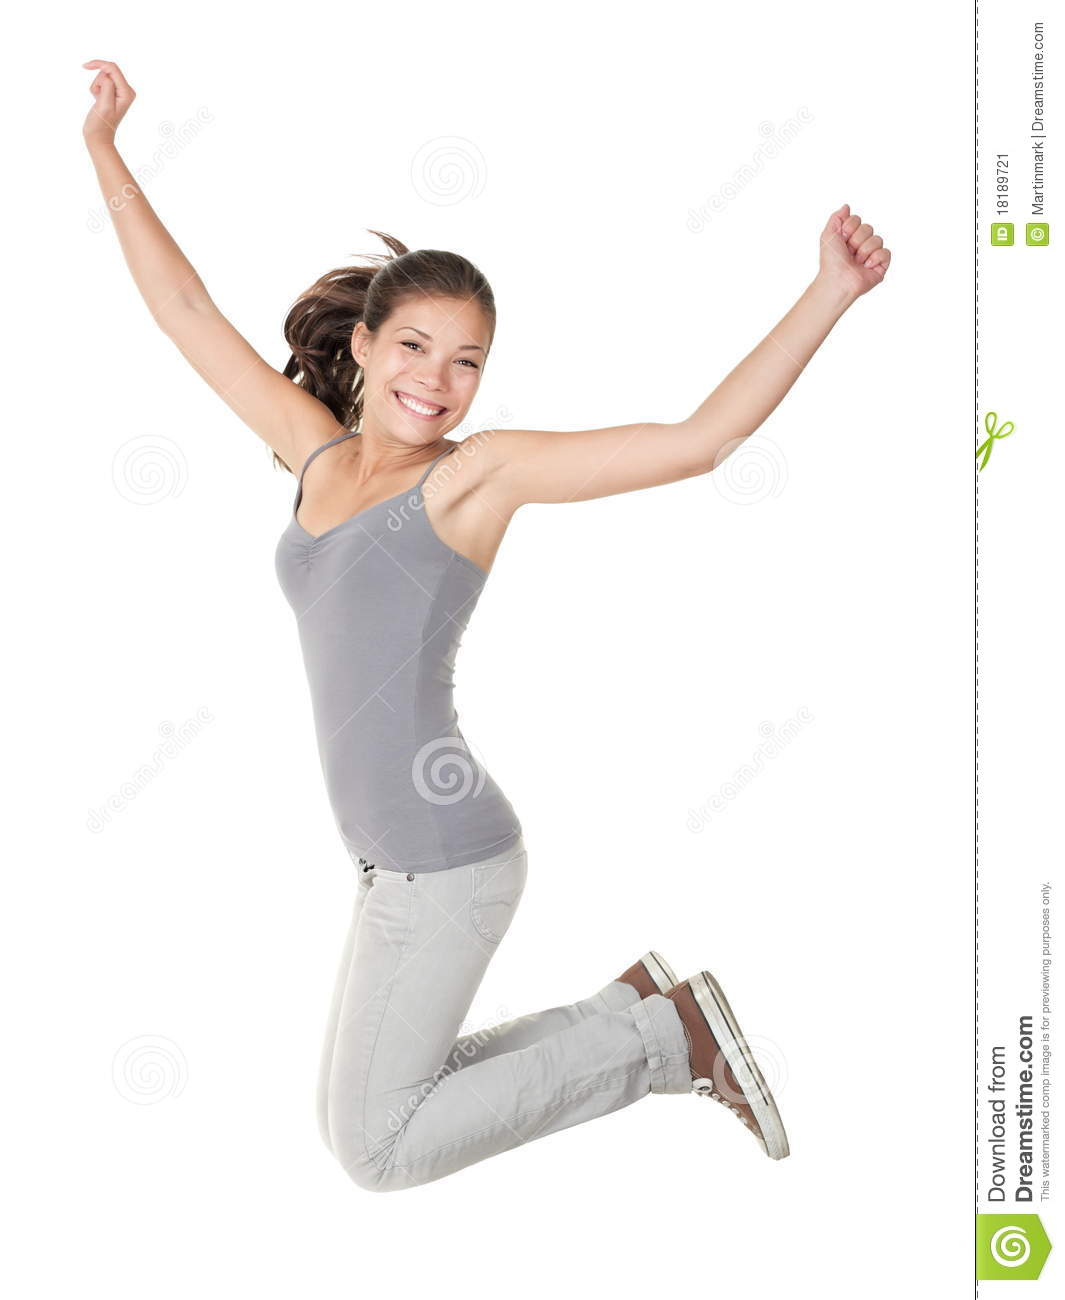 Jumping People Isolated: Student Woman Jump Stock Image ...